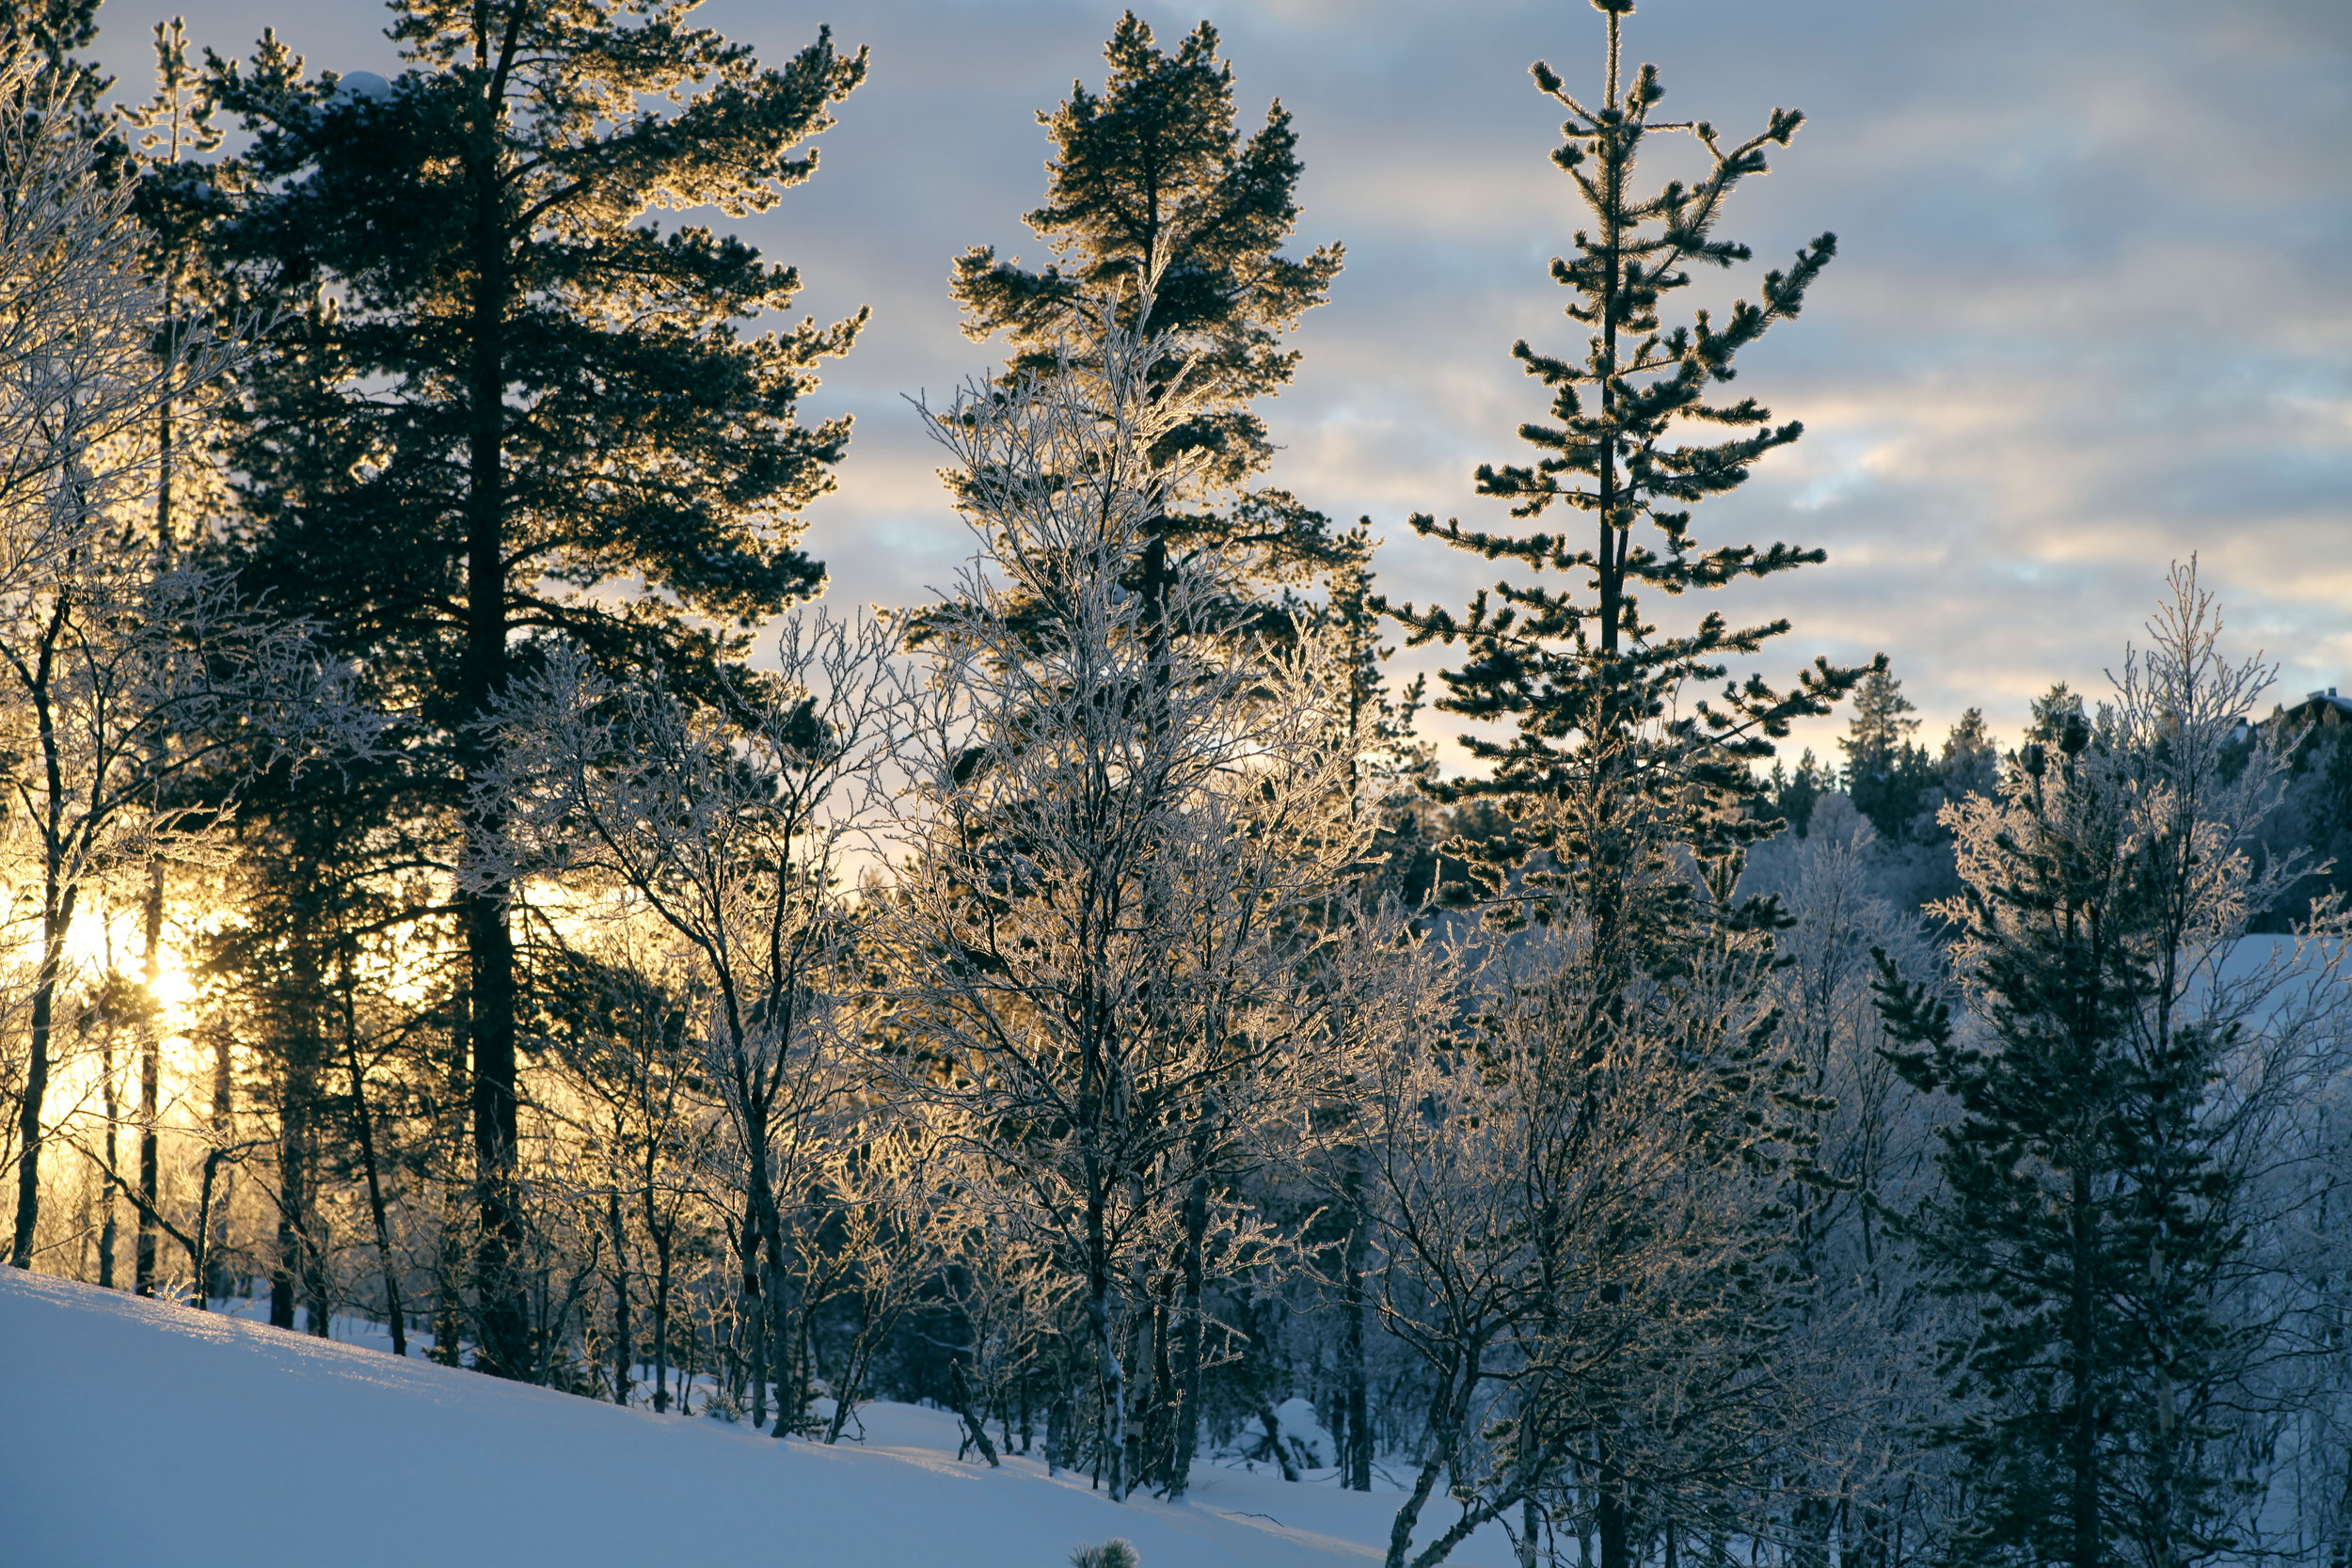 Photo taken by Kristen Tcherneshoff in Saariselkä, Finland. One of the most northern villages in Finland, in the Arctic Circle!